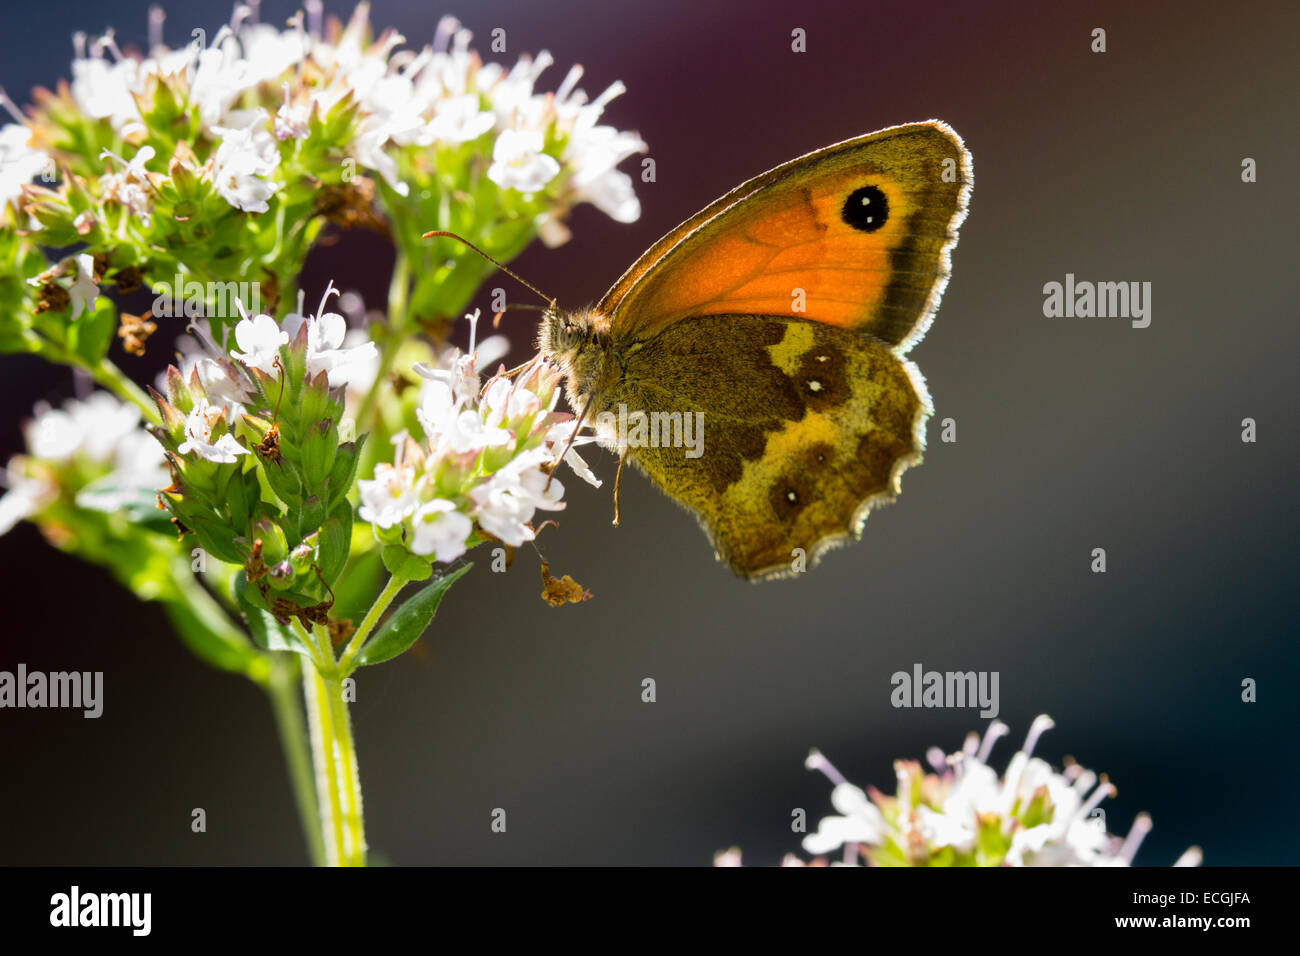 backlit-female-gatekeeper-butterfly-pyronia-tithonus-feeding-on-marjoram-ECGJFA.jpg